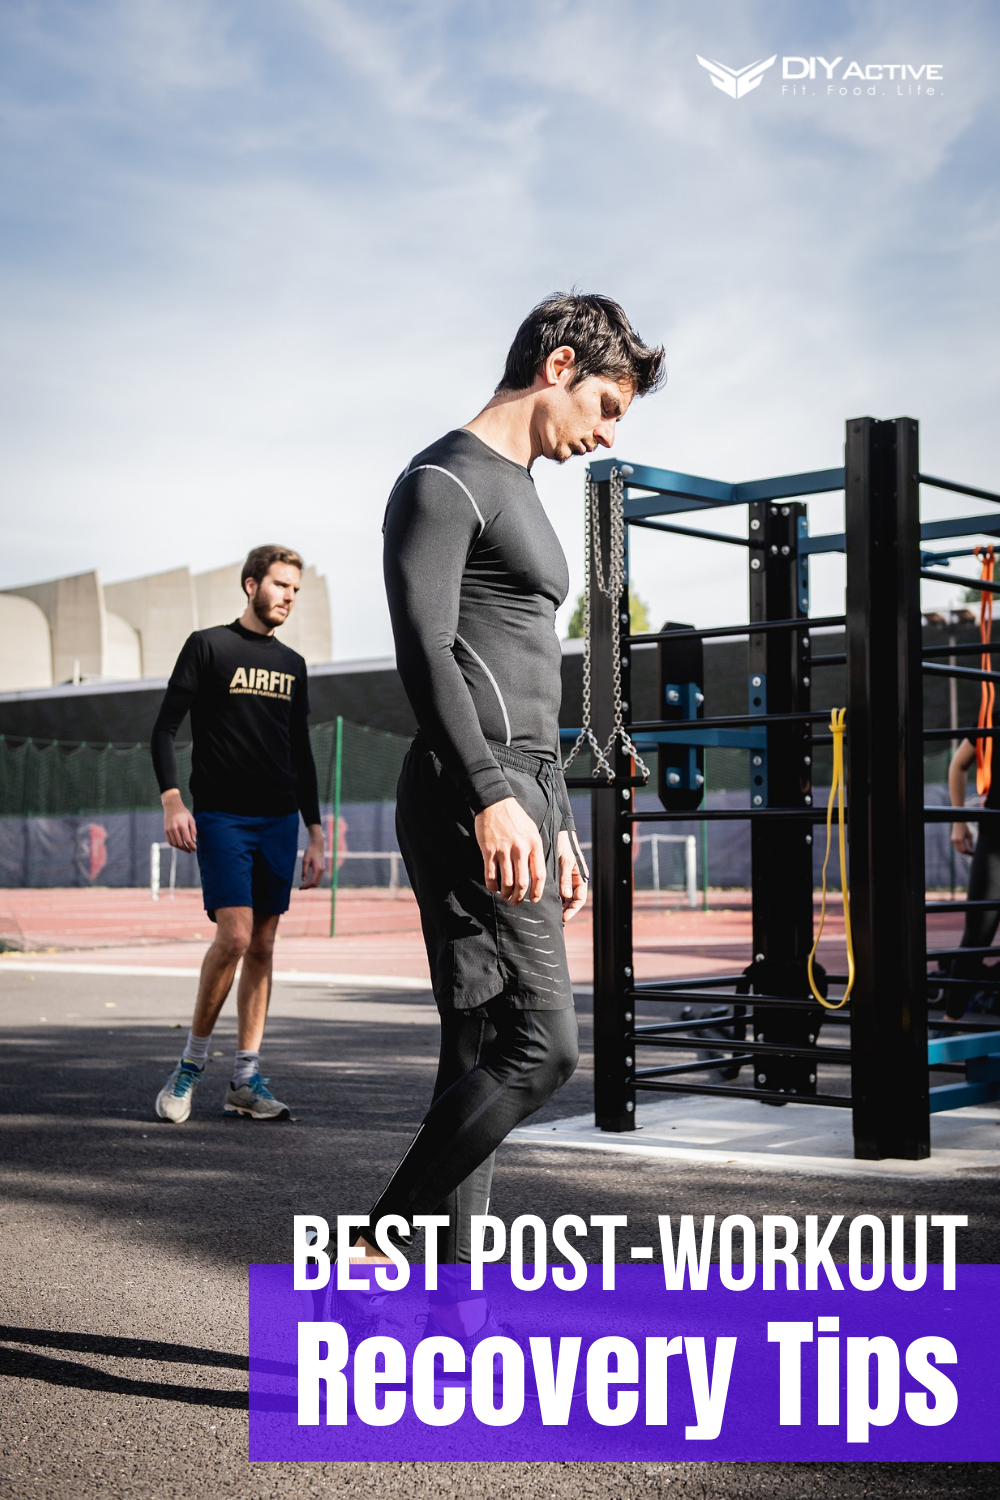 Best Post-Workout Recovery Tips To Help You Recover Faster